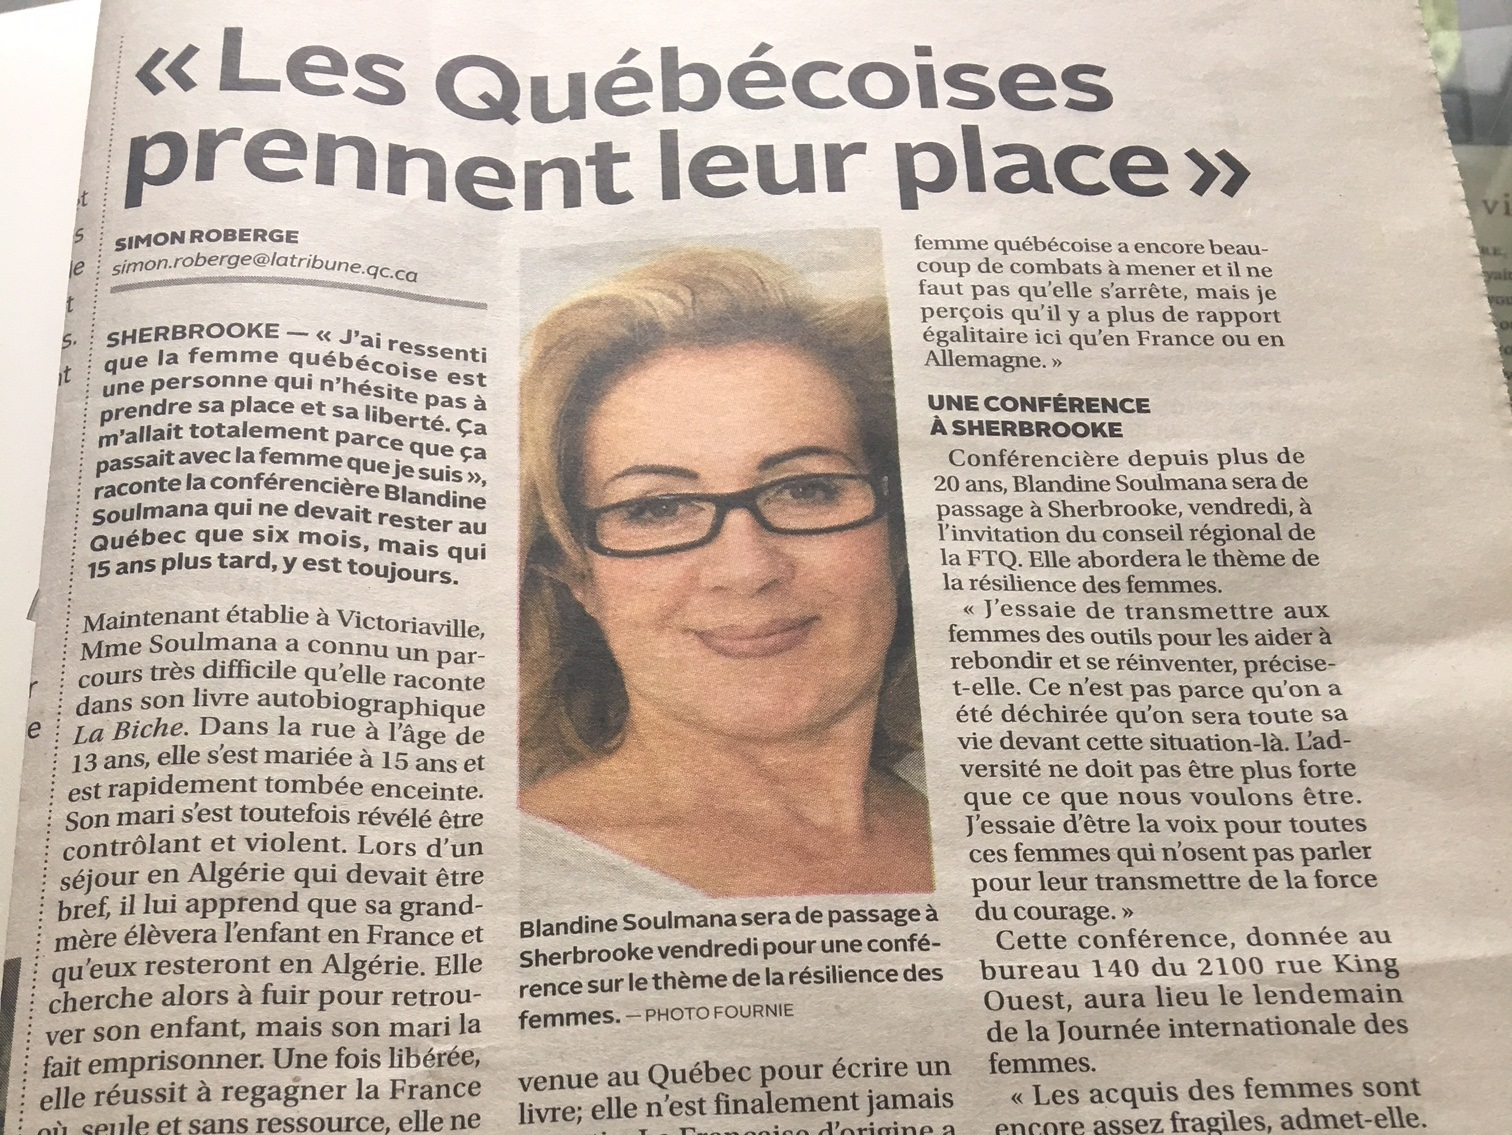 Article de Simon Roberge dans La Tribune